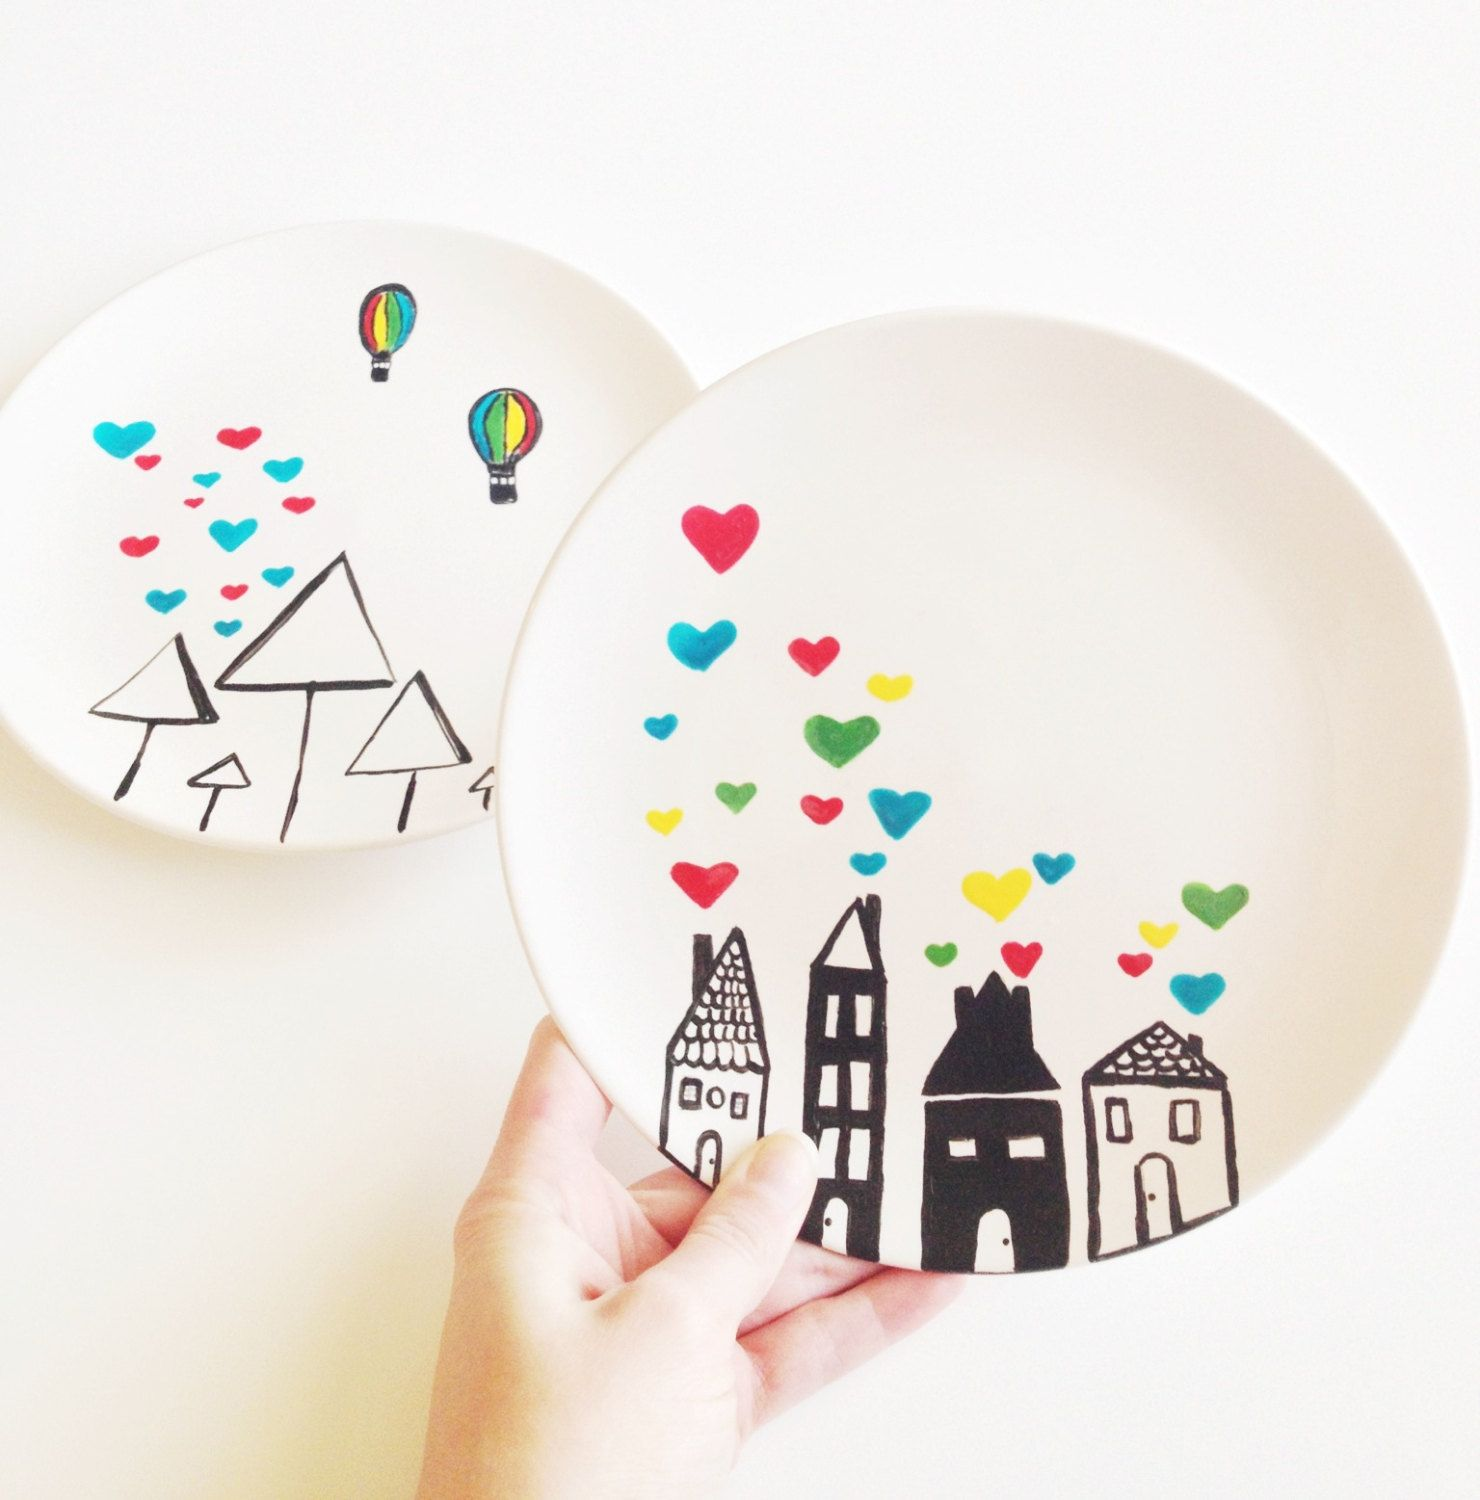 White ceramic plates for crafts - I Like The Different Sizes Of Plates And The Continuing Scene